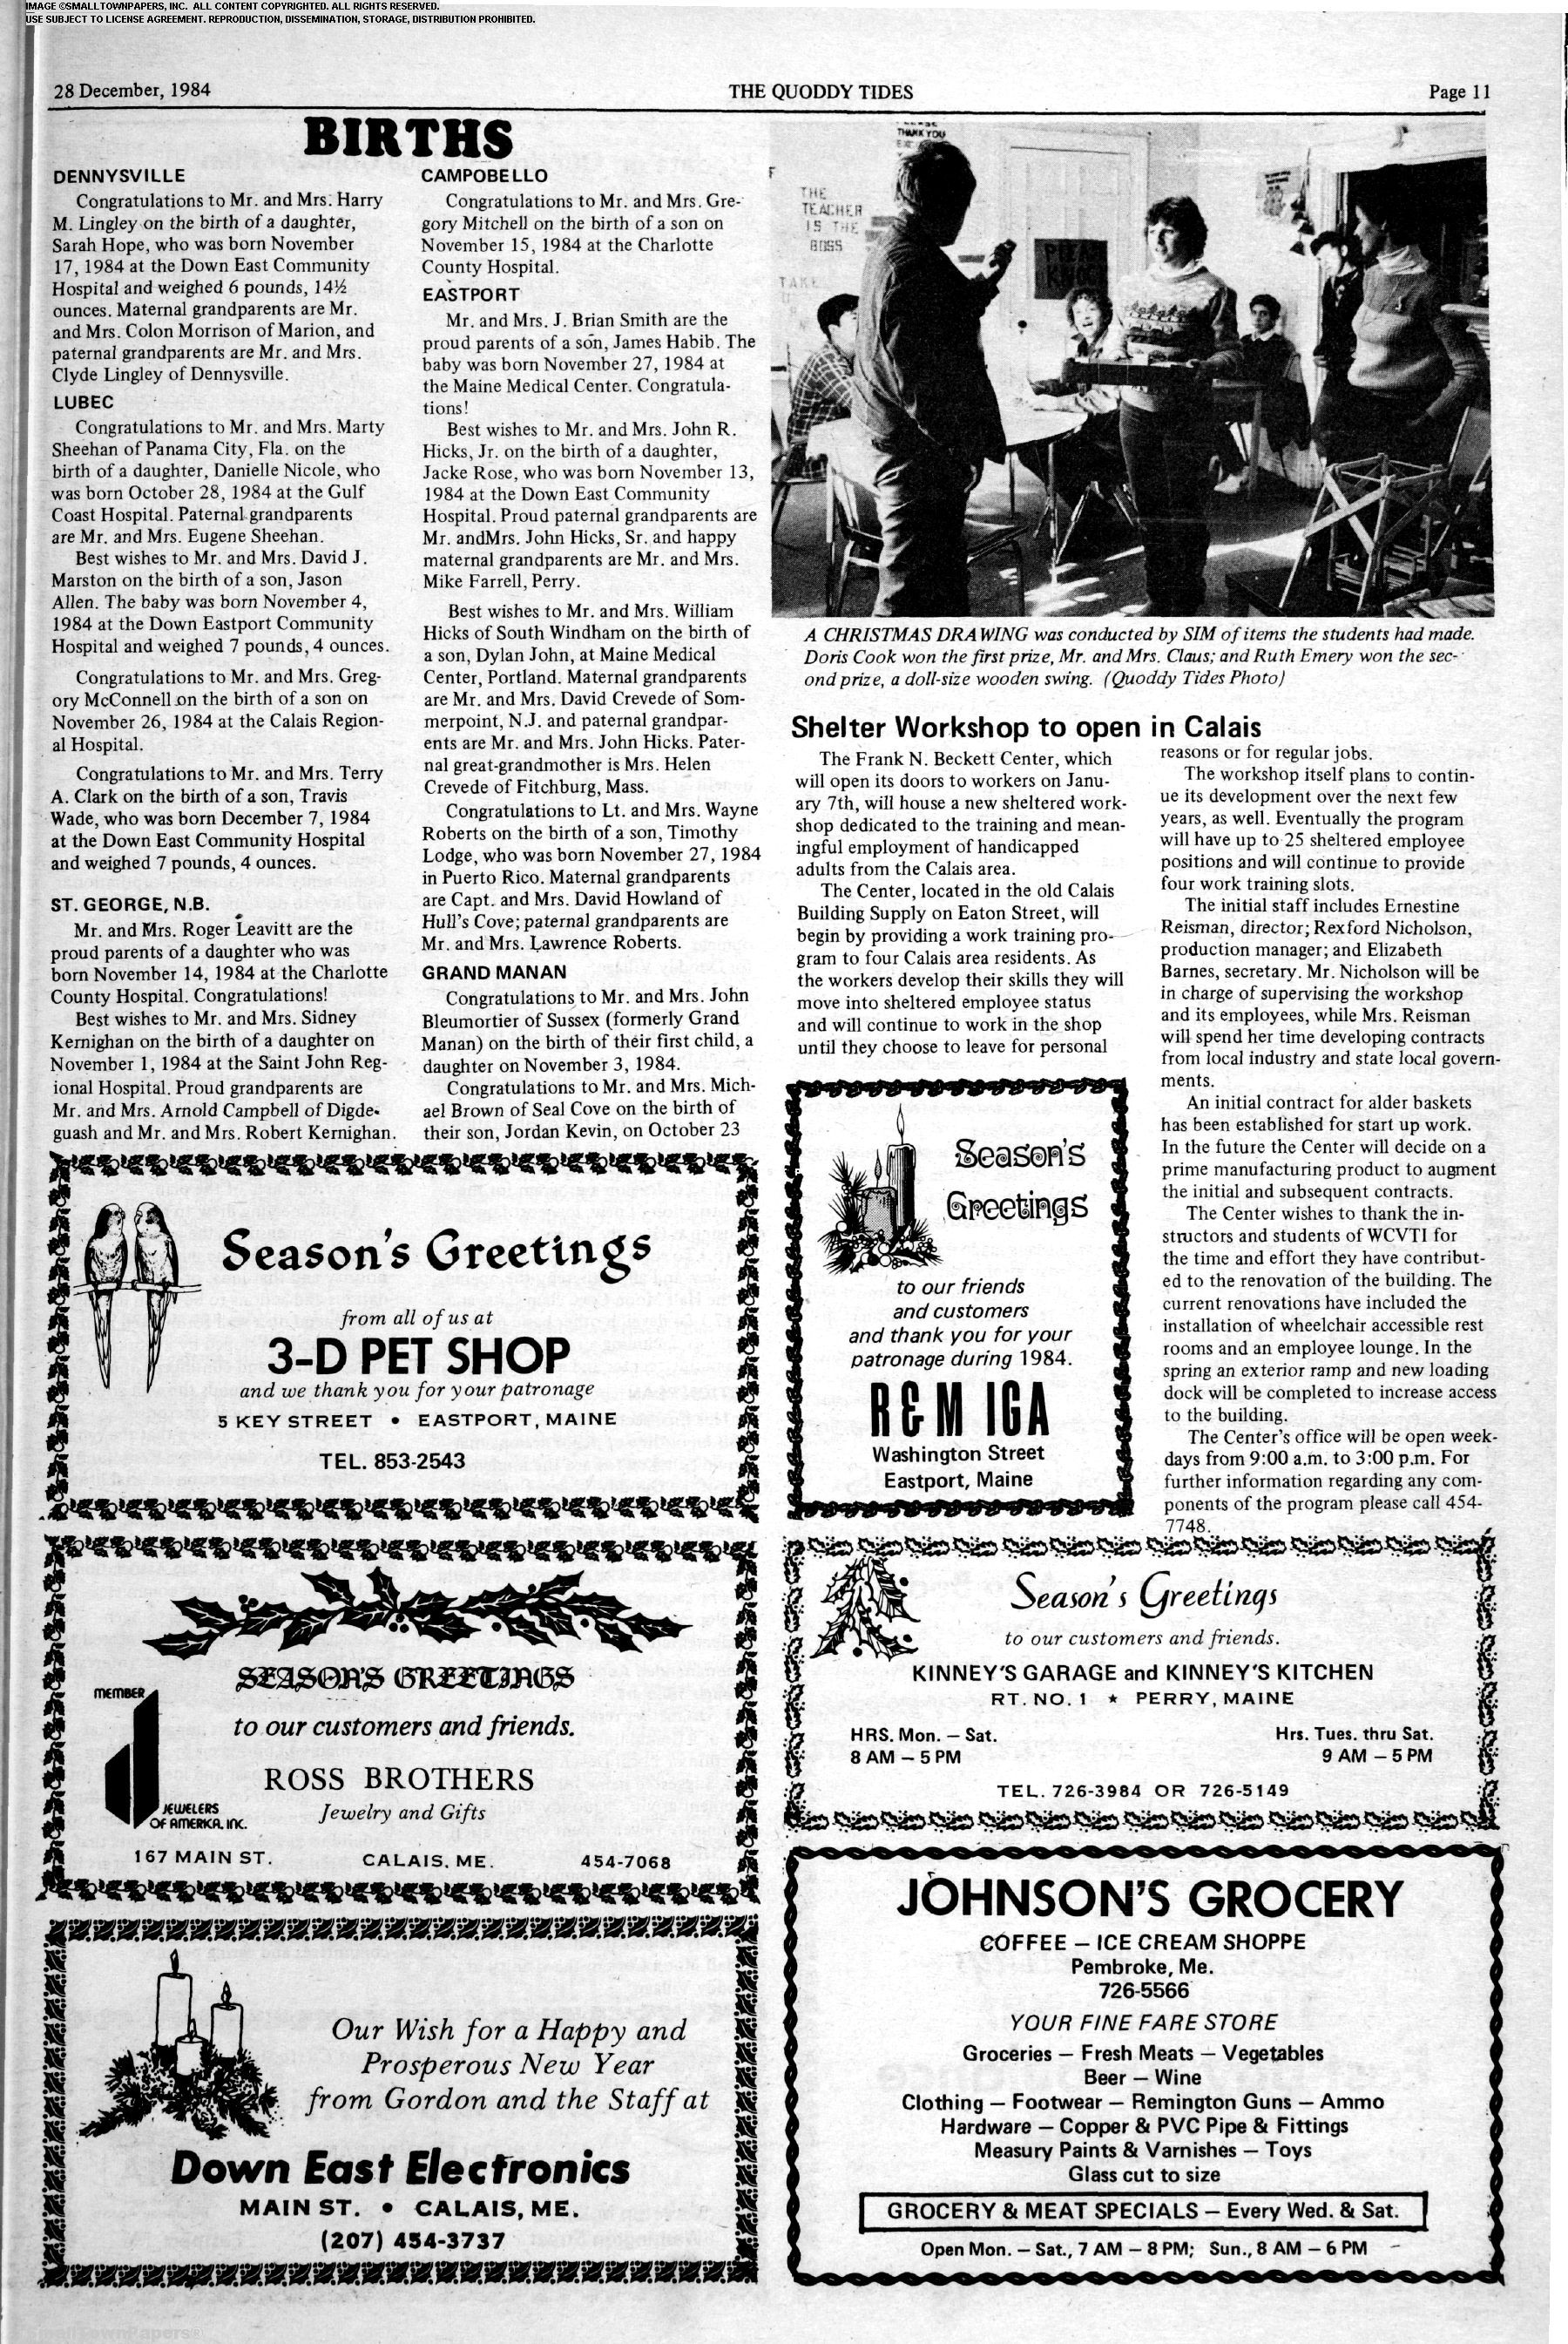 Quoddy Tides December 28, 1984: Page 11